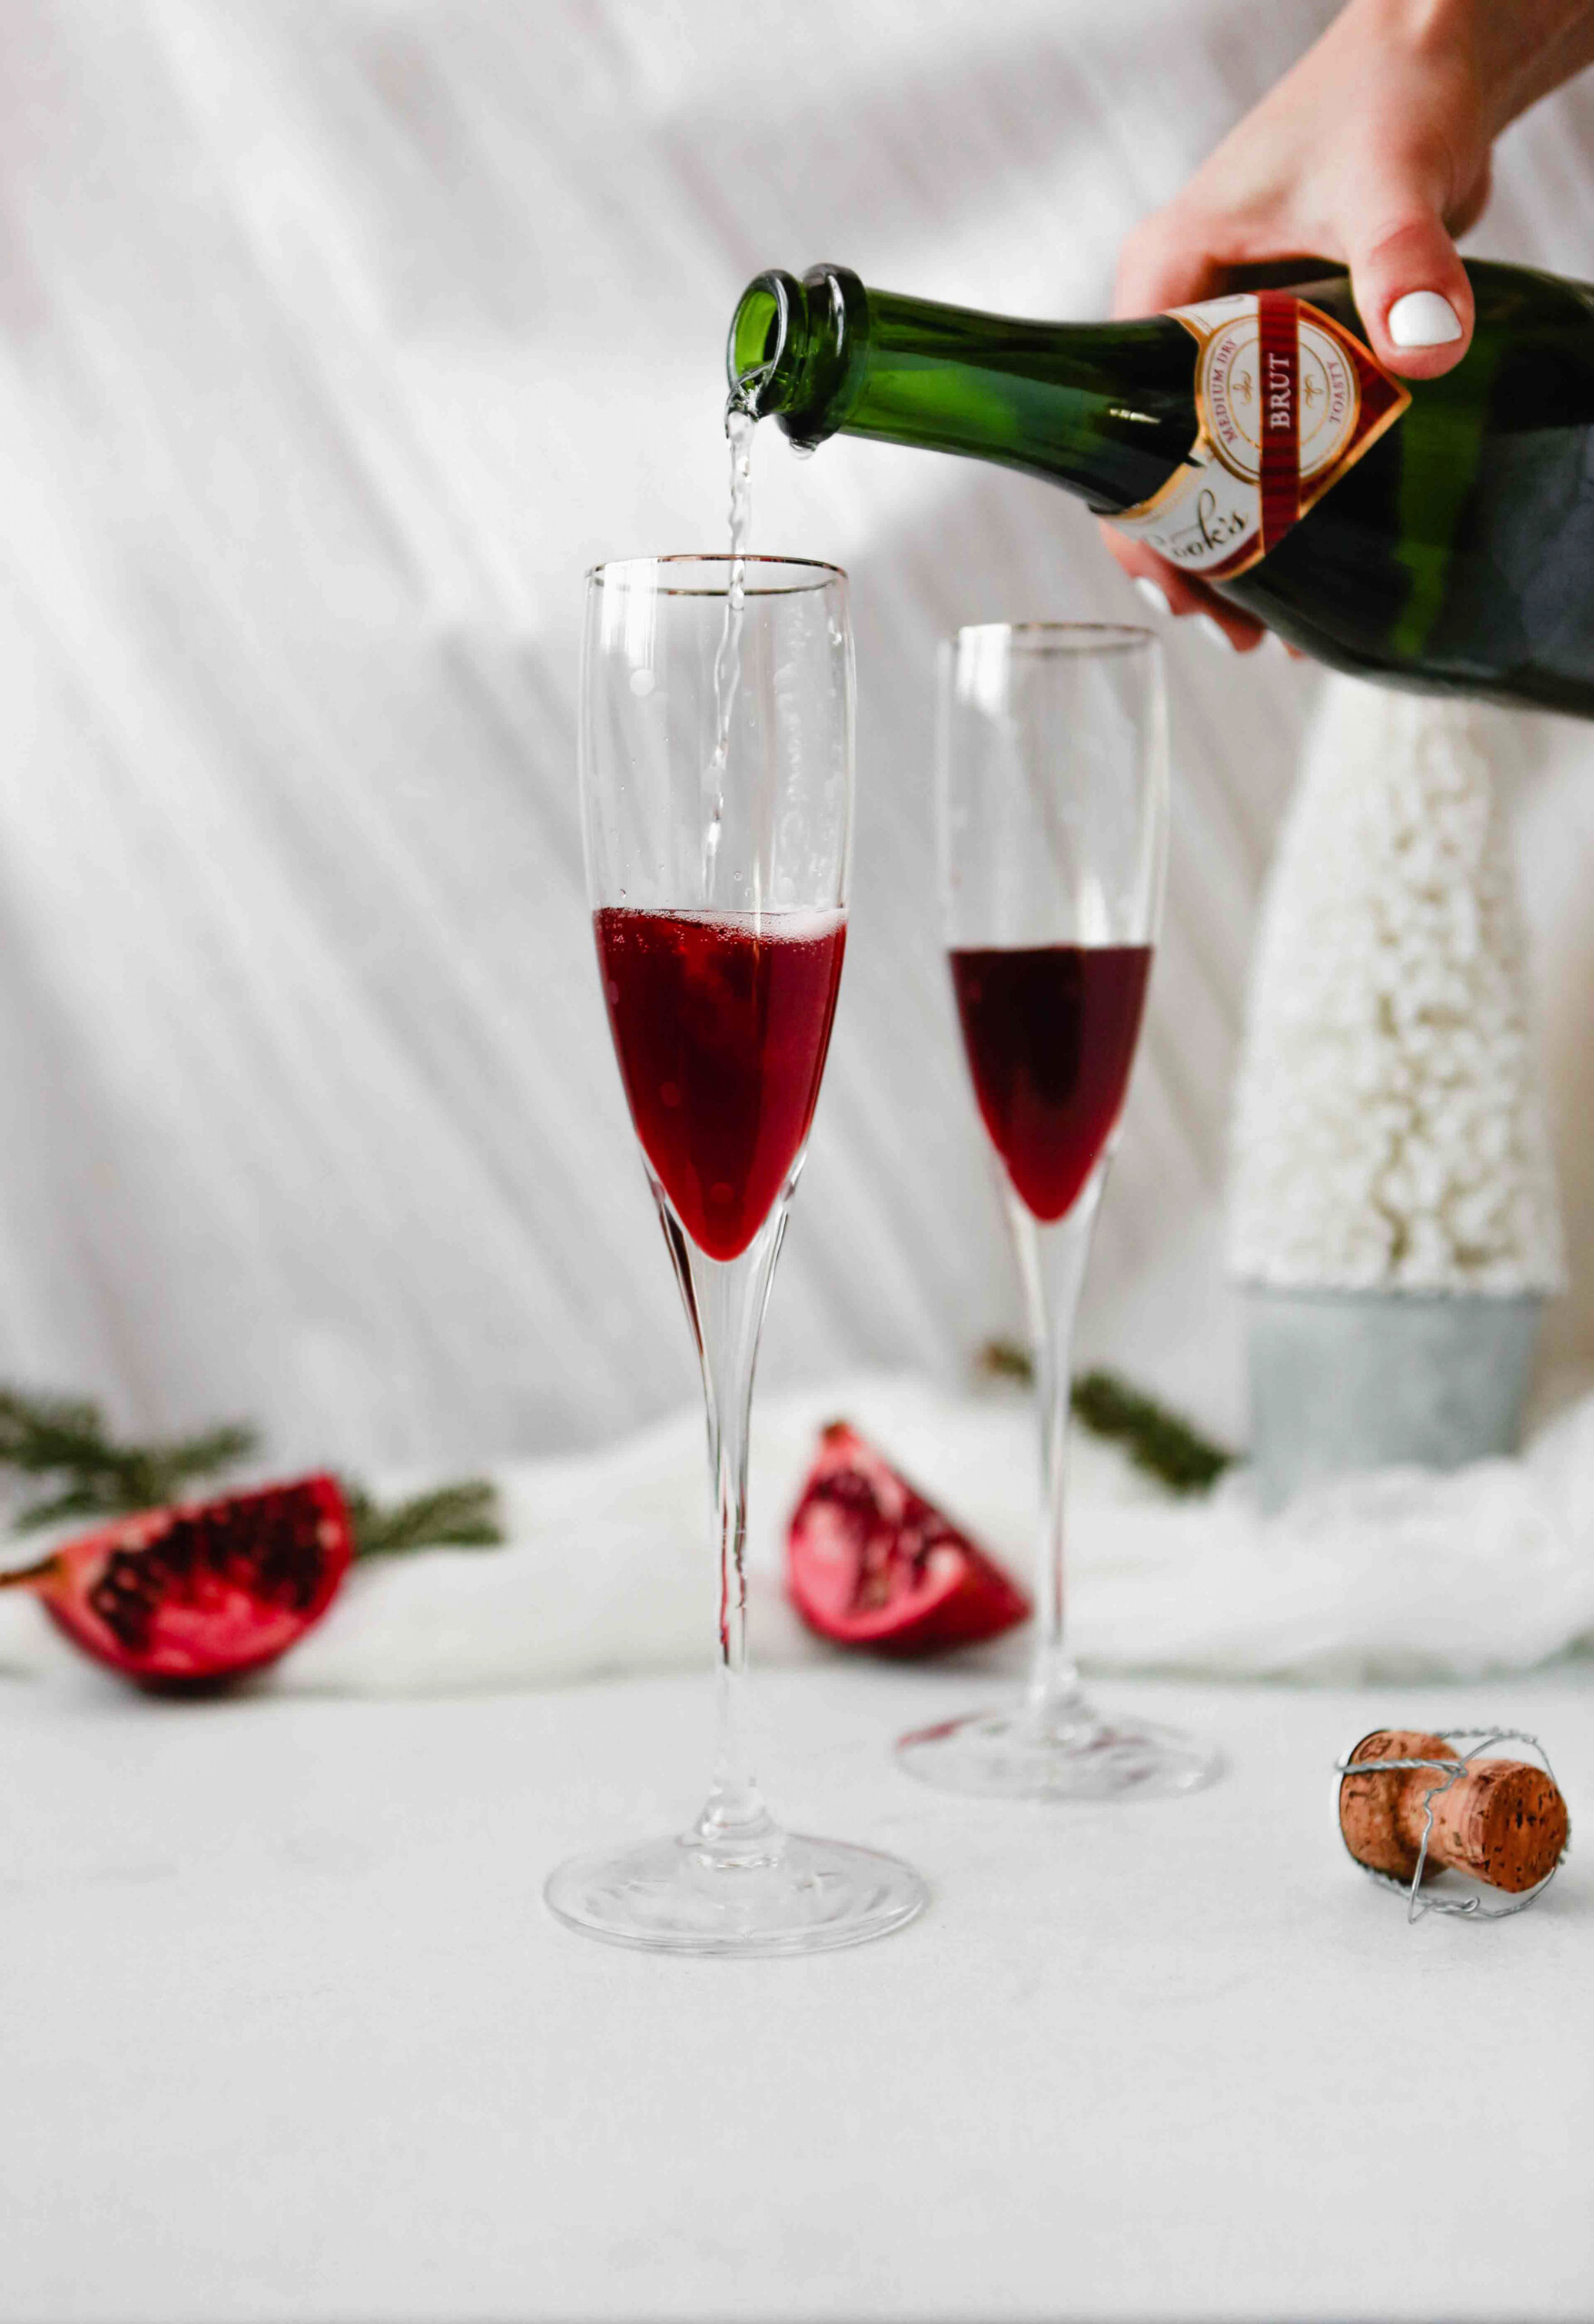 Photograph of sparkling wine being poured into champagne flutes with pomegranate liqueur